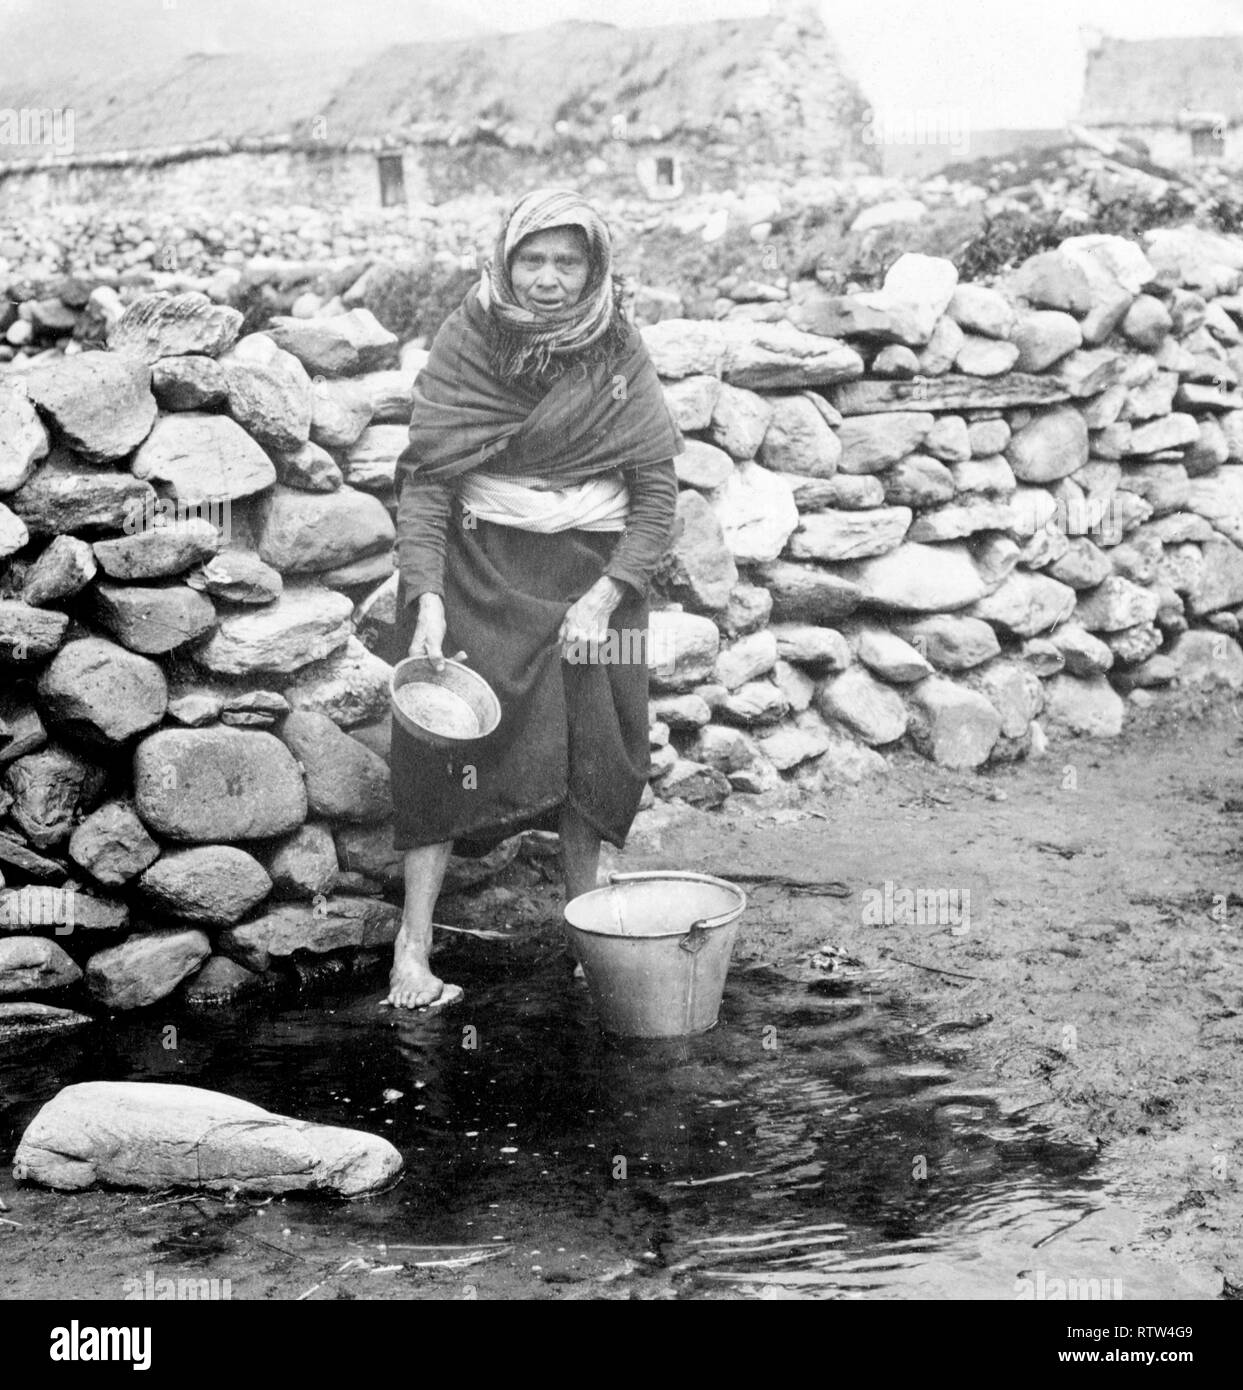 irish peasant woman collecting water in the west coast of ireland circa 1900  Image updated using digital restoration and retouching techniques - Stock Image